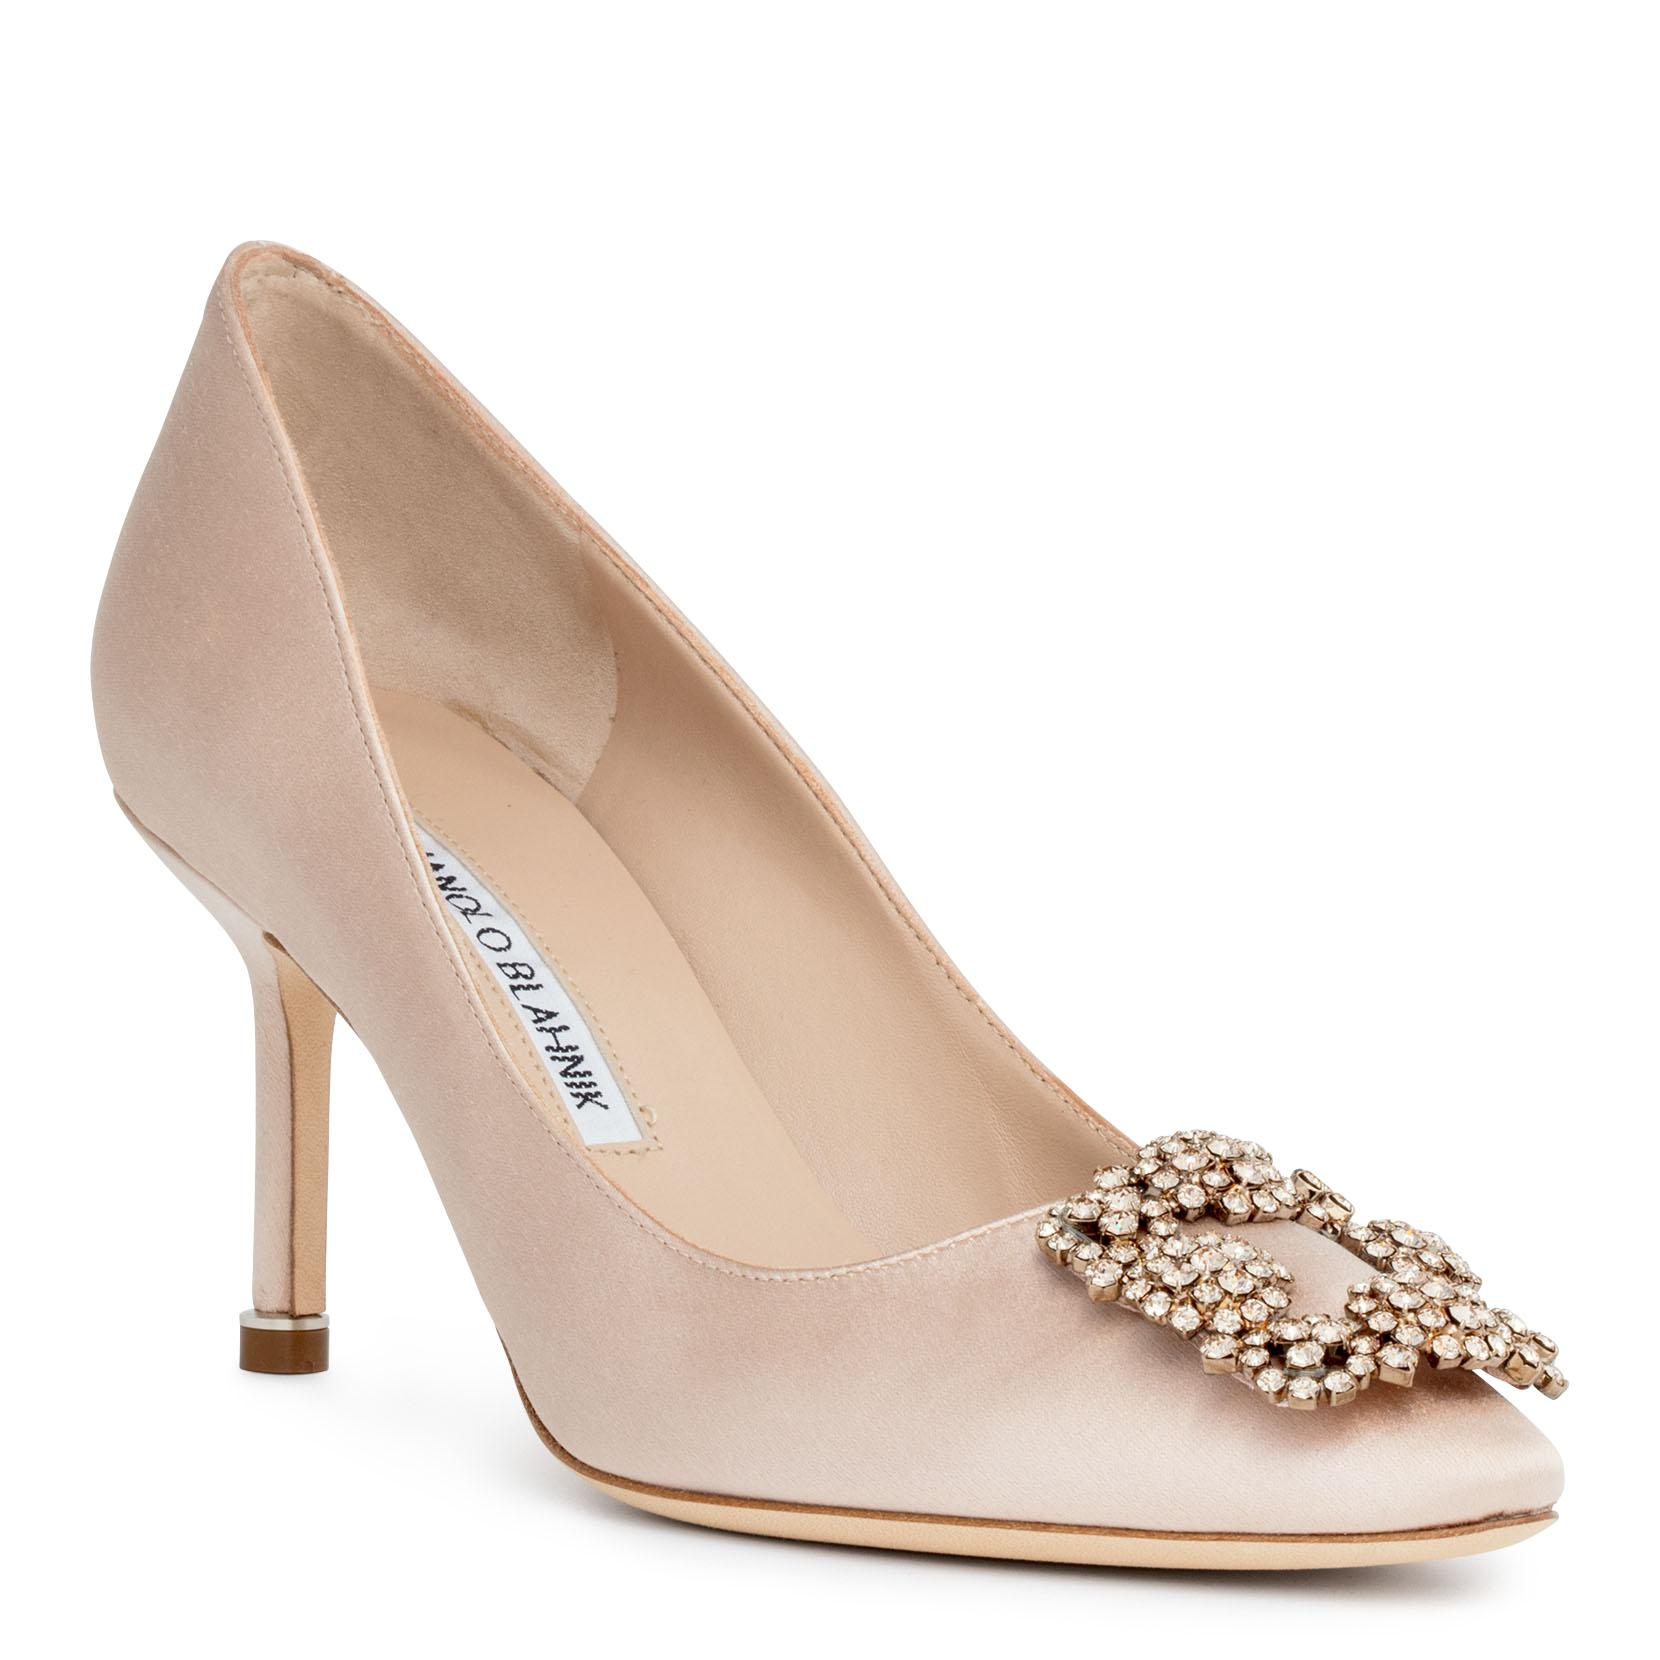 Hangisi 70 Bellini nude satin pumps Manolo Blahnik Buy Cheap Limited Edition bLl5kfk